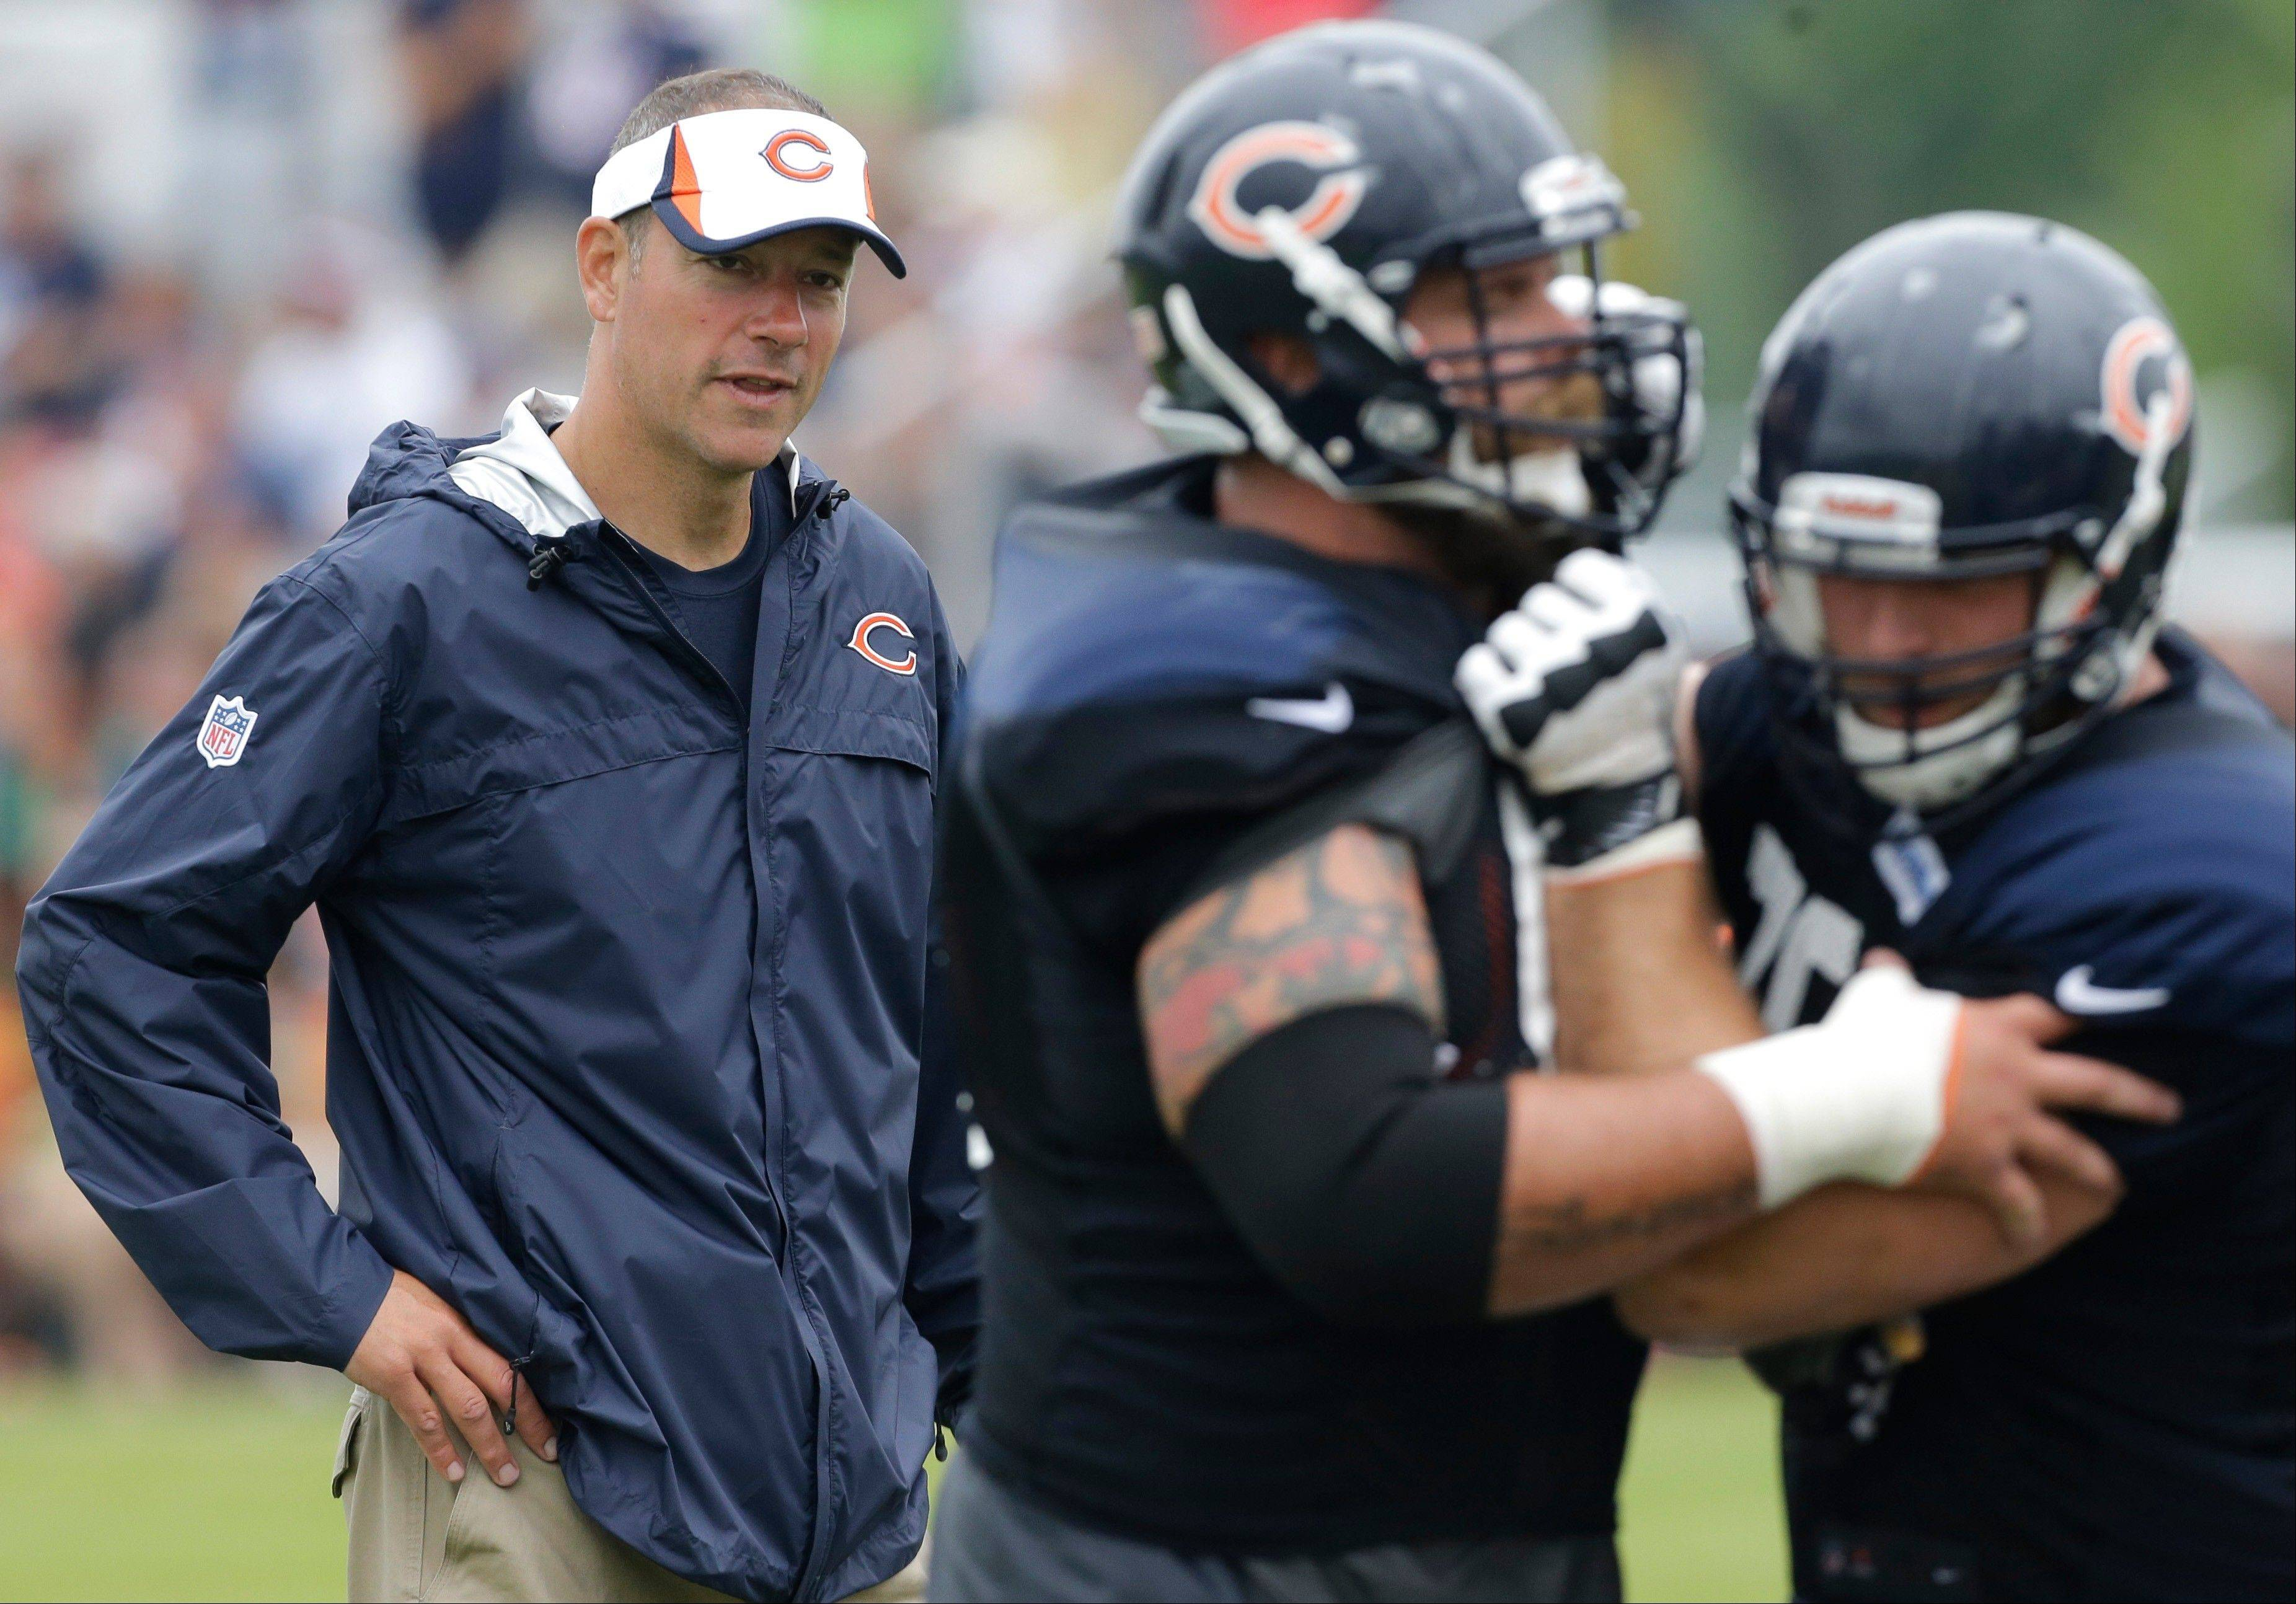 Bears offensive coordinator Aaron Kromer says the No. 1 thing for quarterback hopefuls Trent Edwards and Jordan Palmer will be the understanding of the offense.